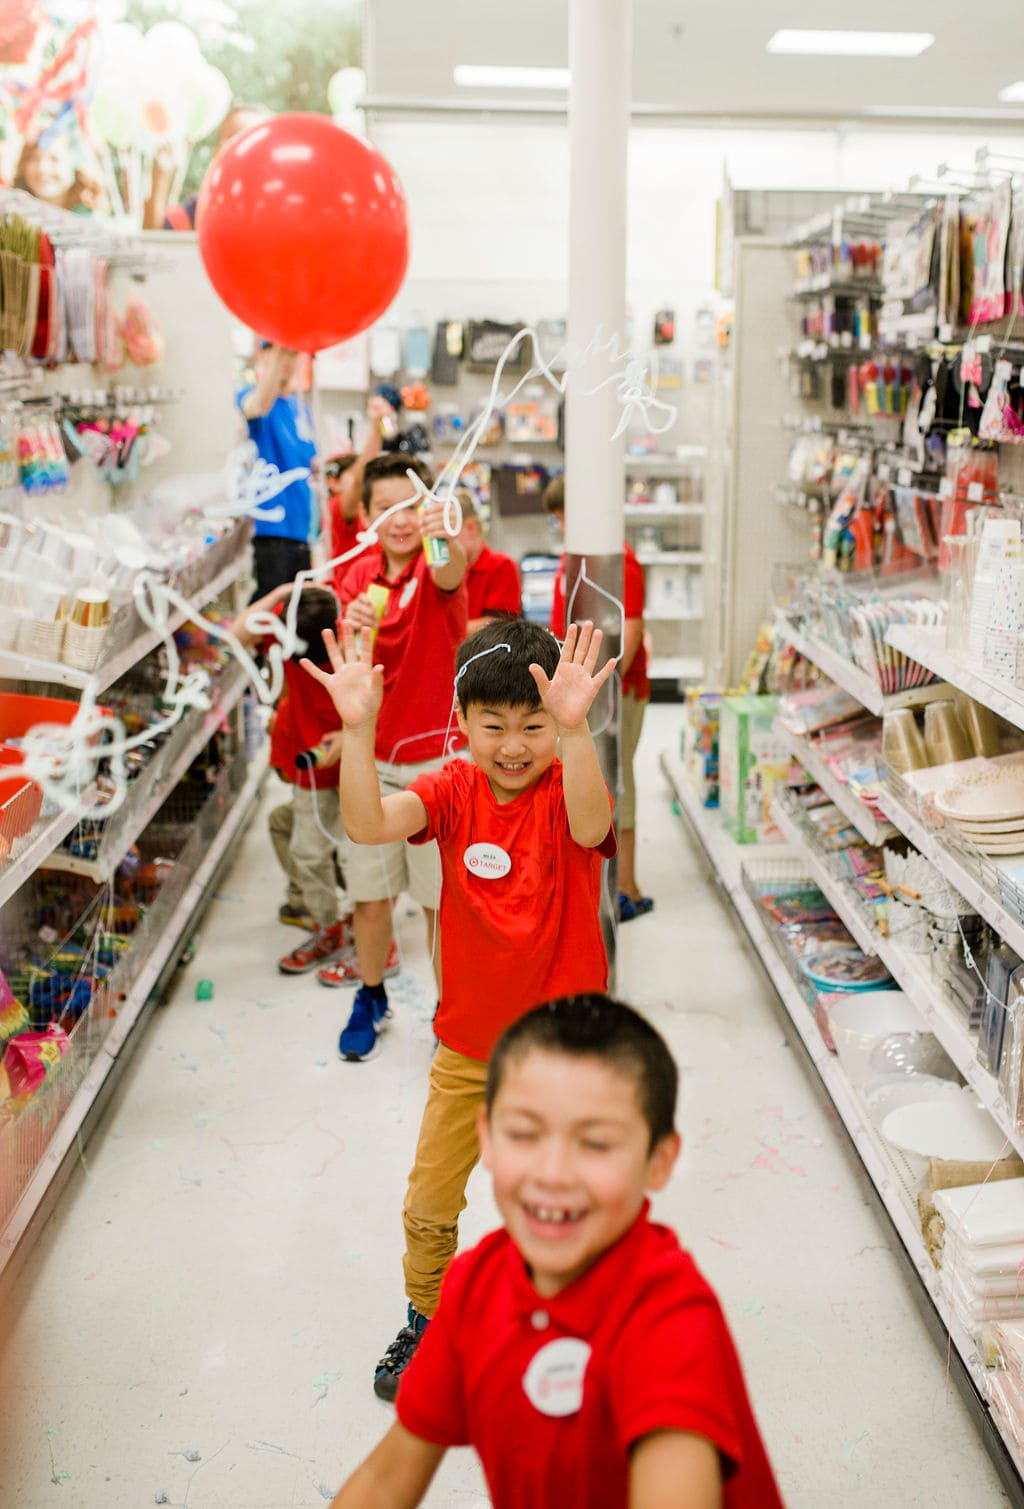 kids running in an aisle